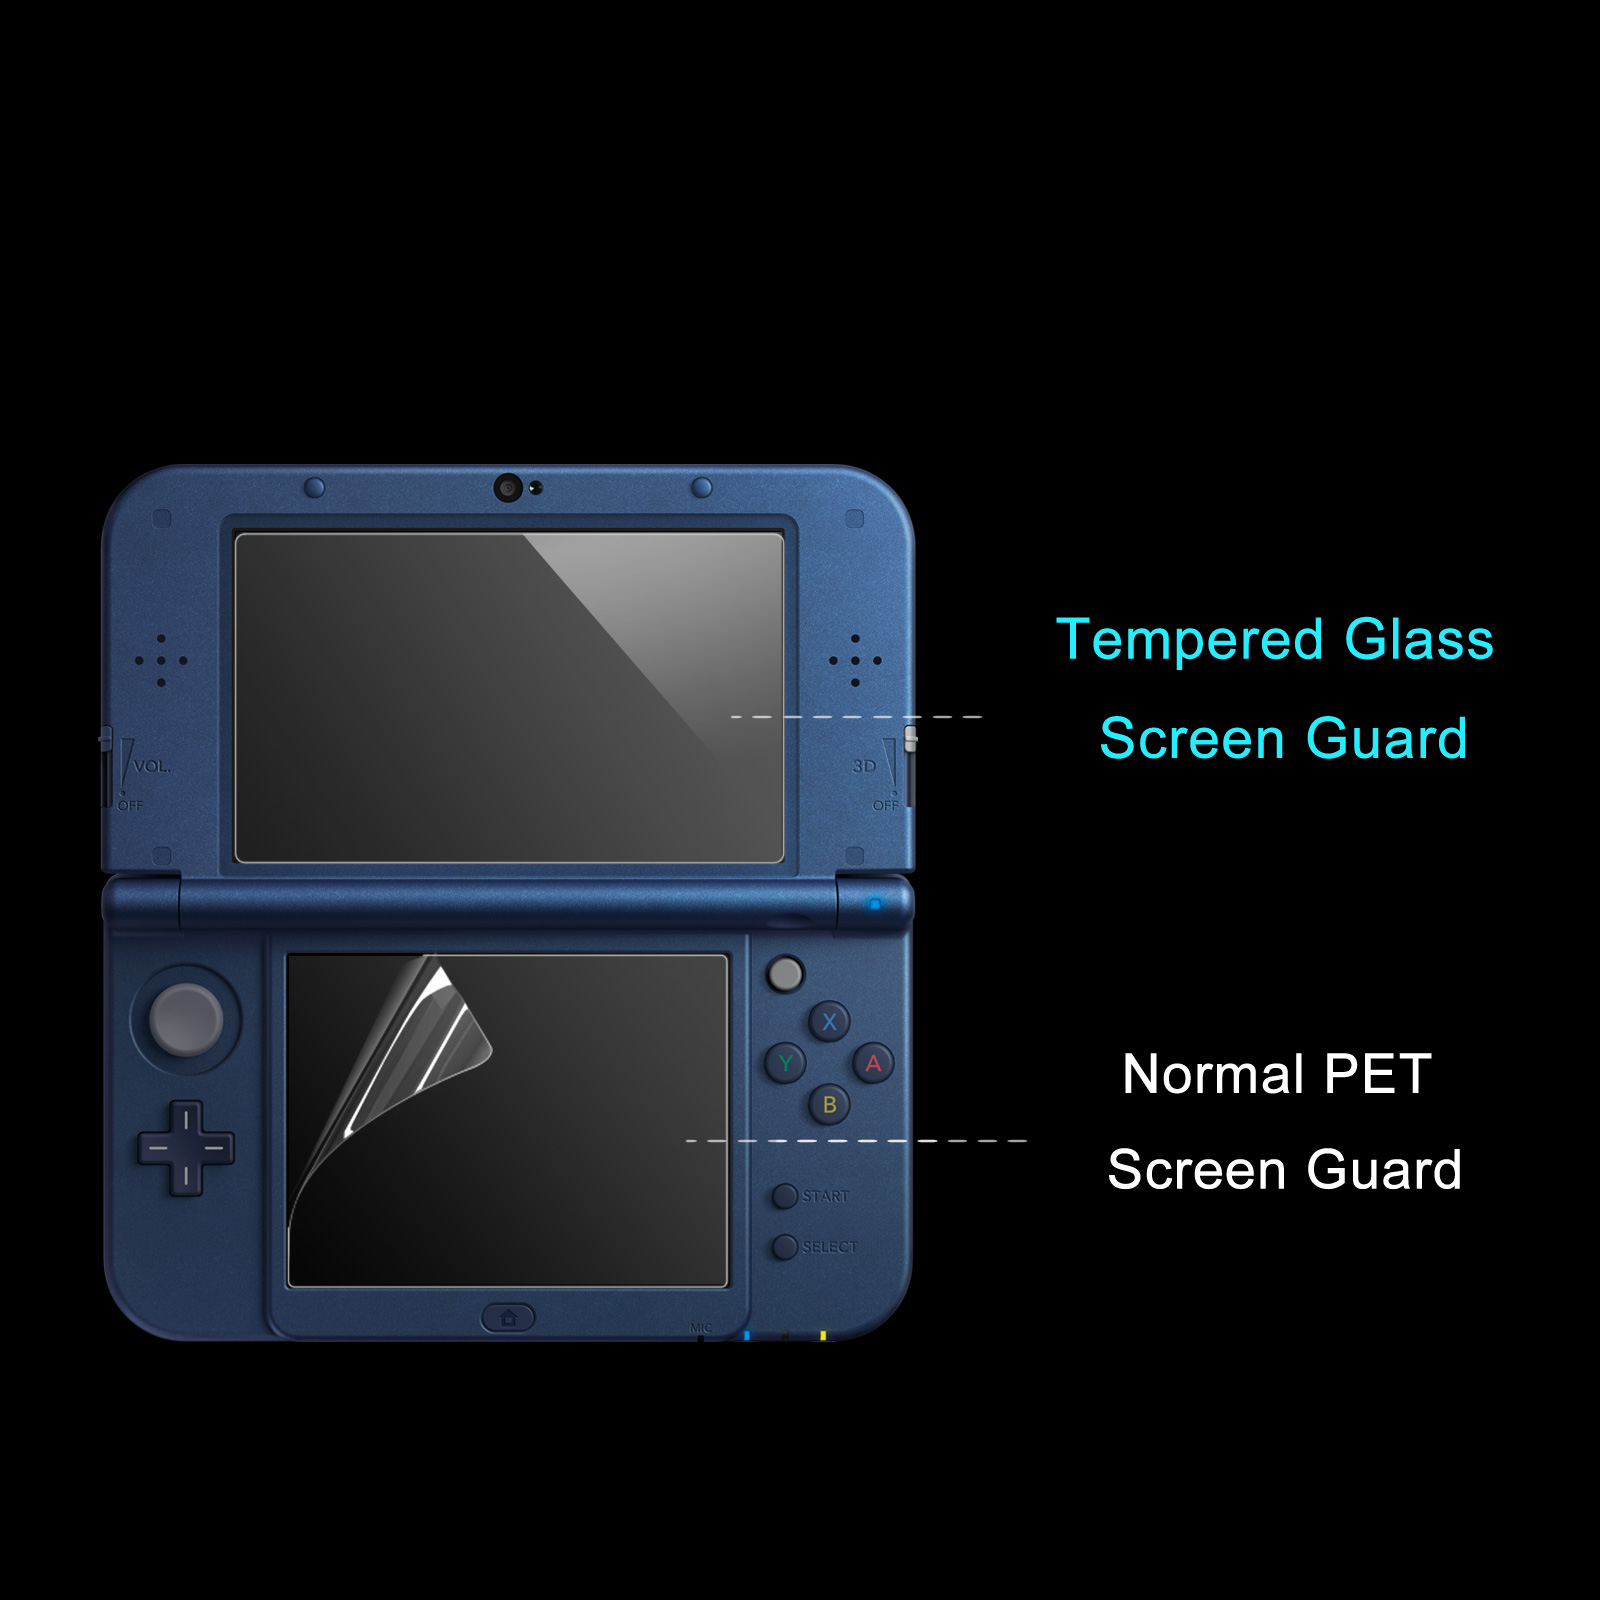 XL_ds_3_New_tempered_Glass_Screen_Protector_4001_Zff2 nintendo 3ds xl wiring diagram ps3 controller wiring diagram New 3DS XL at eliteediting.co